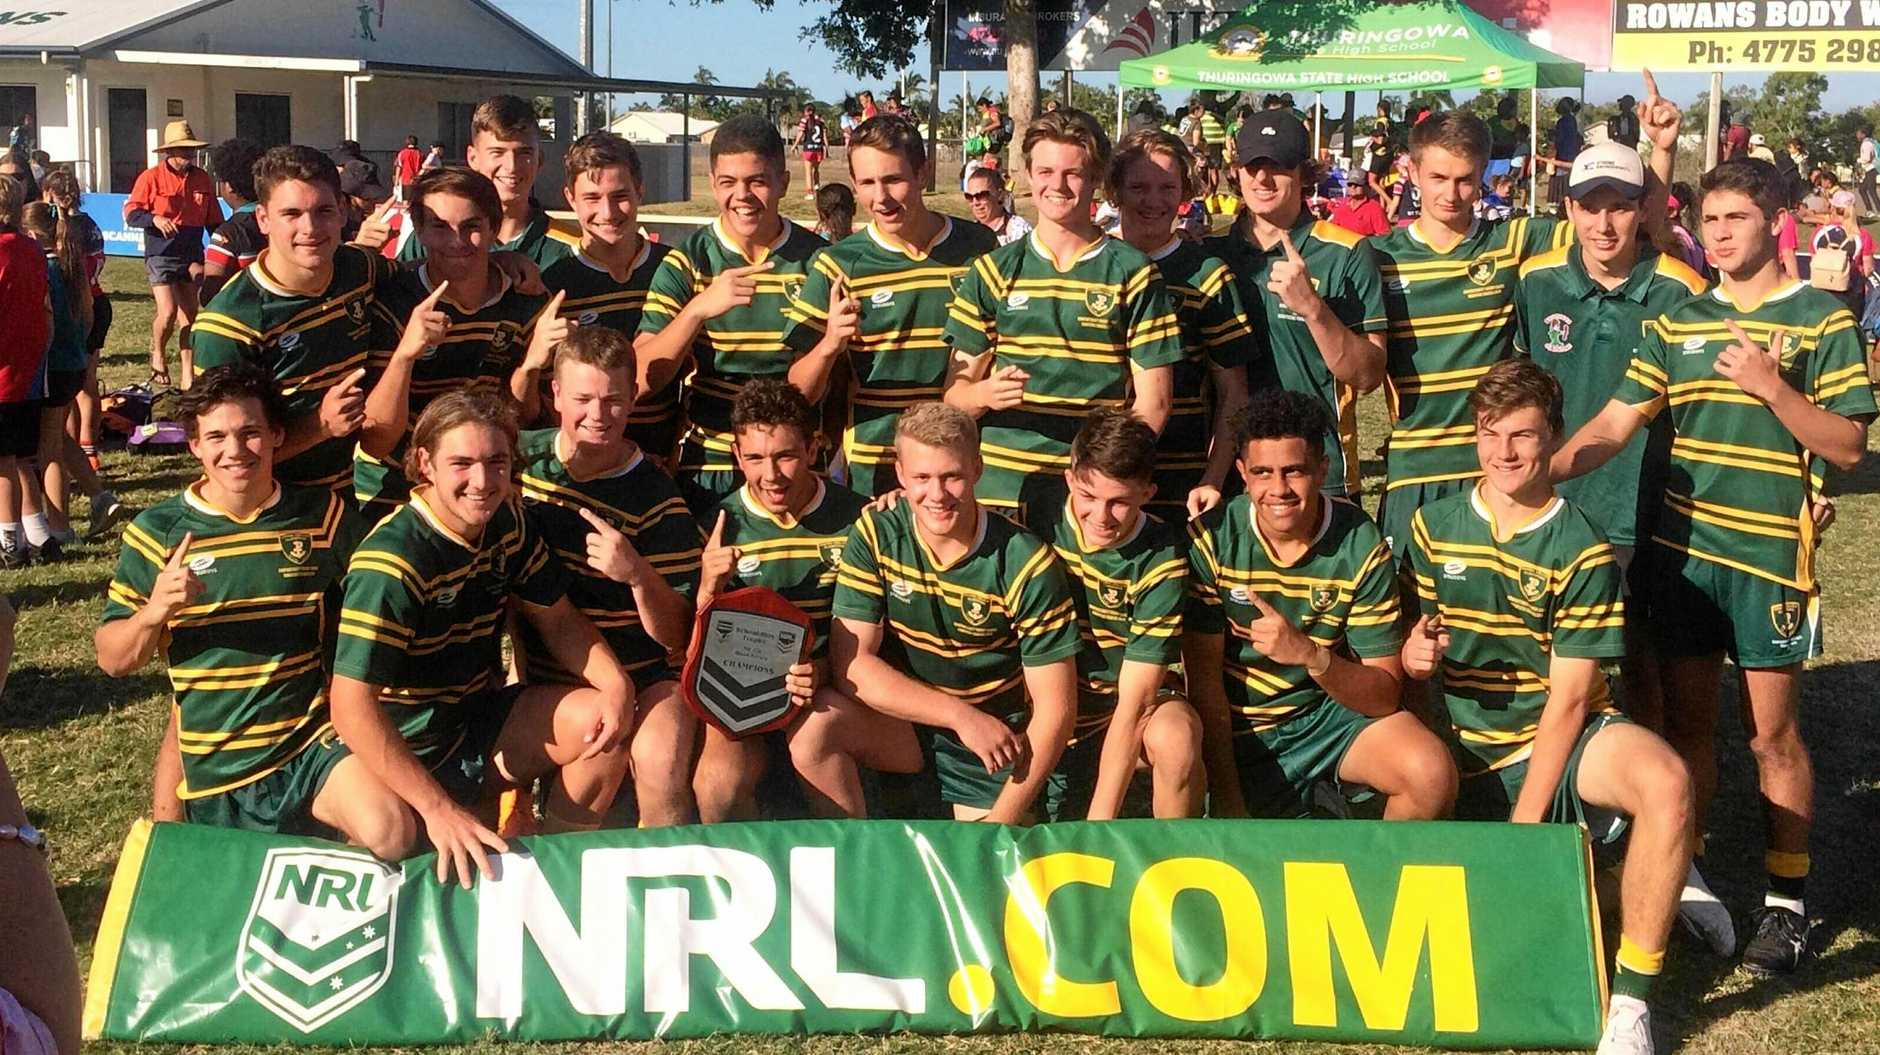 HISTORY MAKERS: Chanel College players pose in celebratory mode after winning the NRL Schoolboy Trophy Central Queensland / North Queensland Quad Series Final.